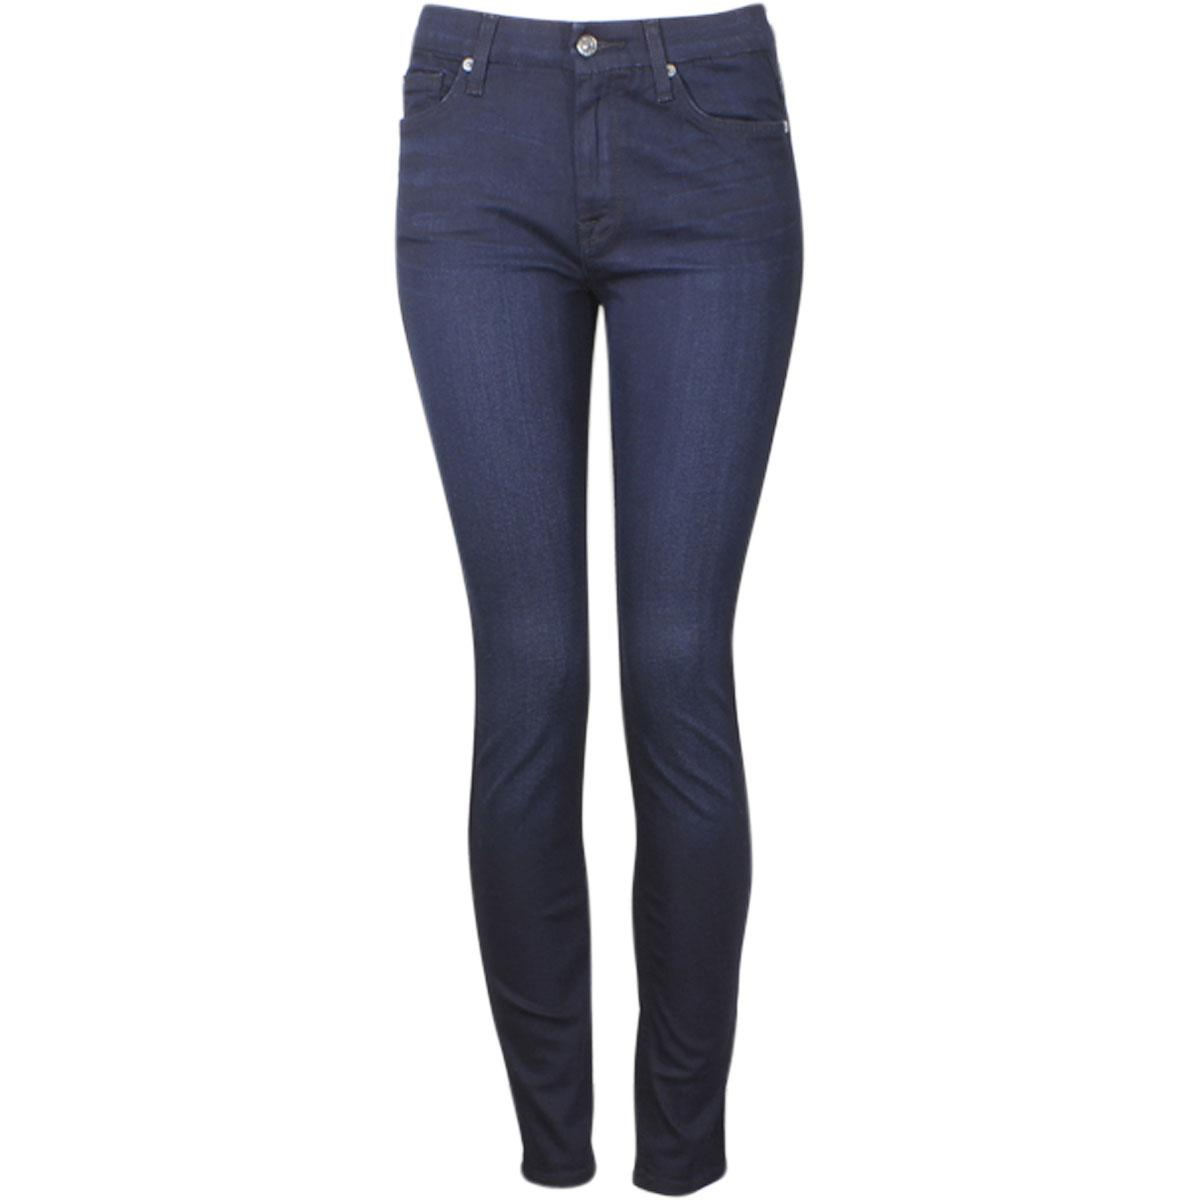 Image of 7 For All Mankind Women's (B)Air Denim The High Waist Skinny Jeans - Blue - 28 (5/6)